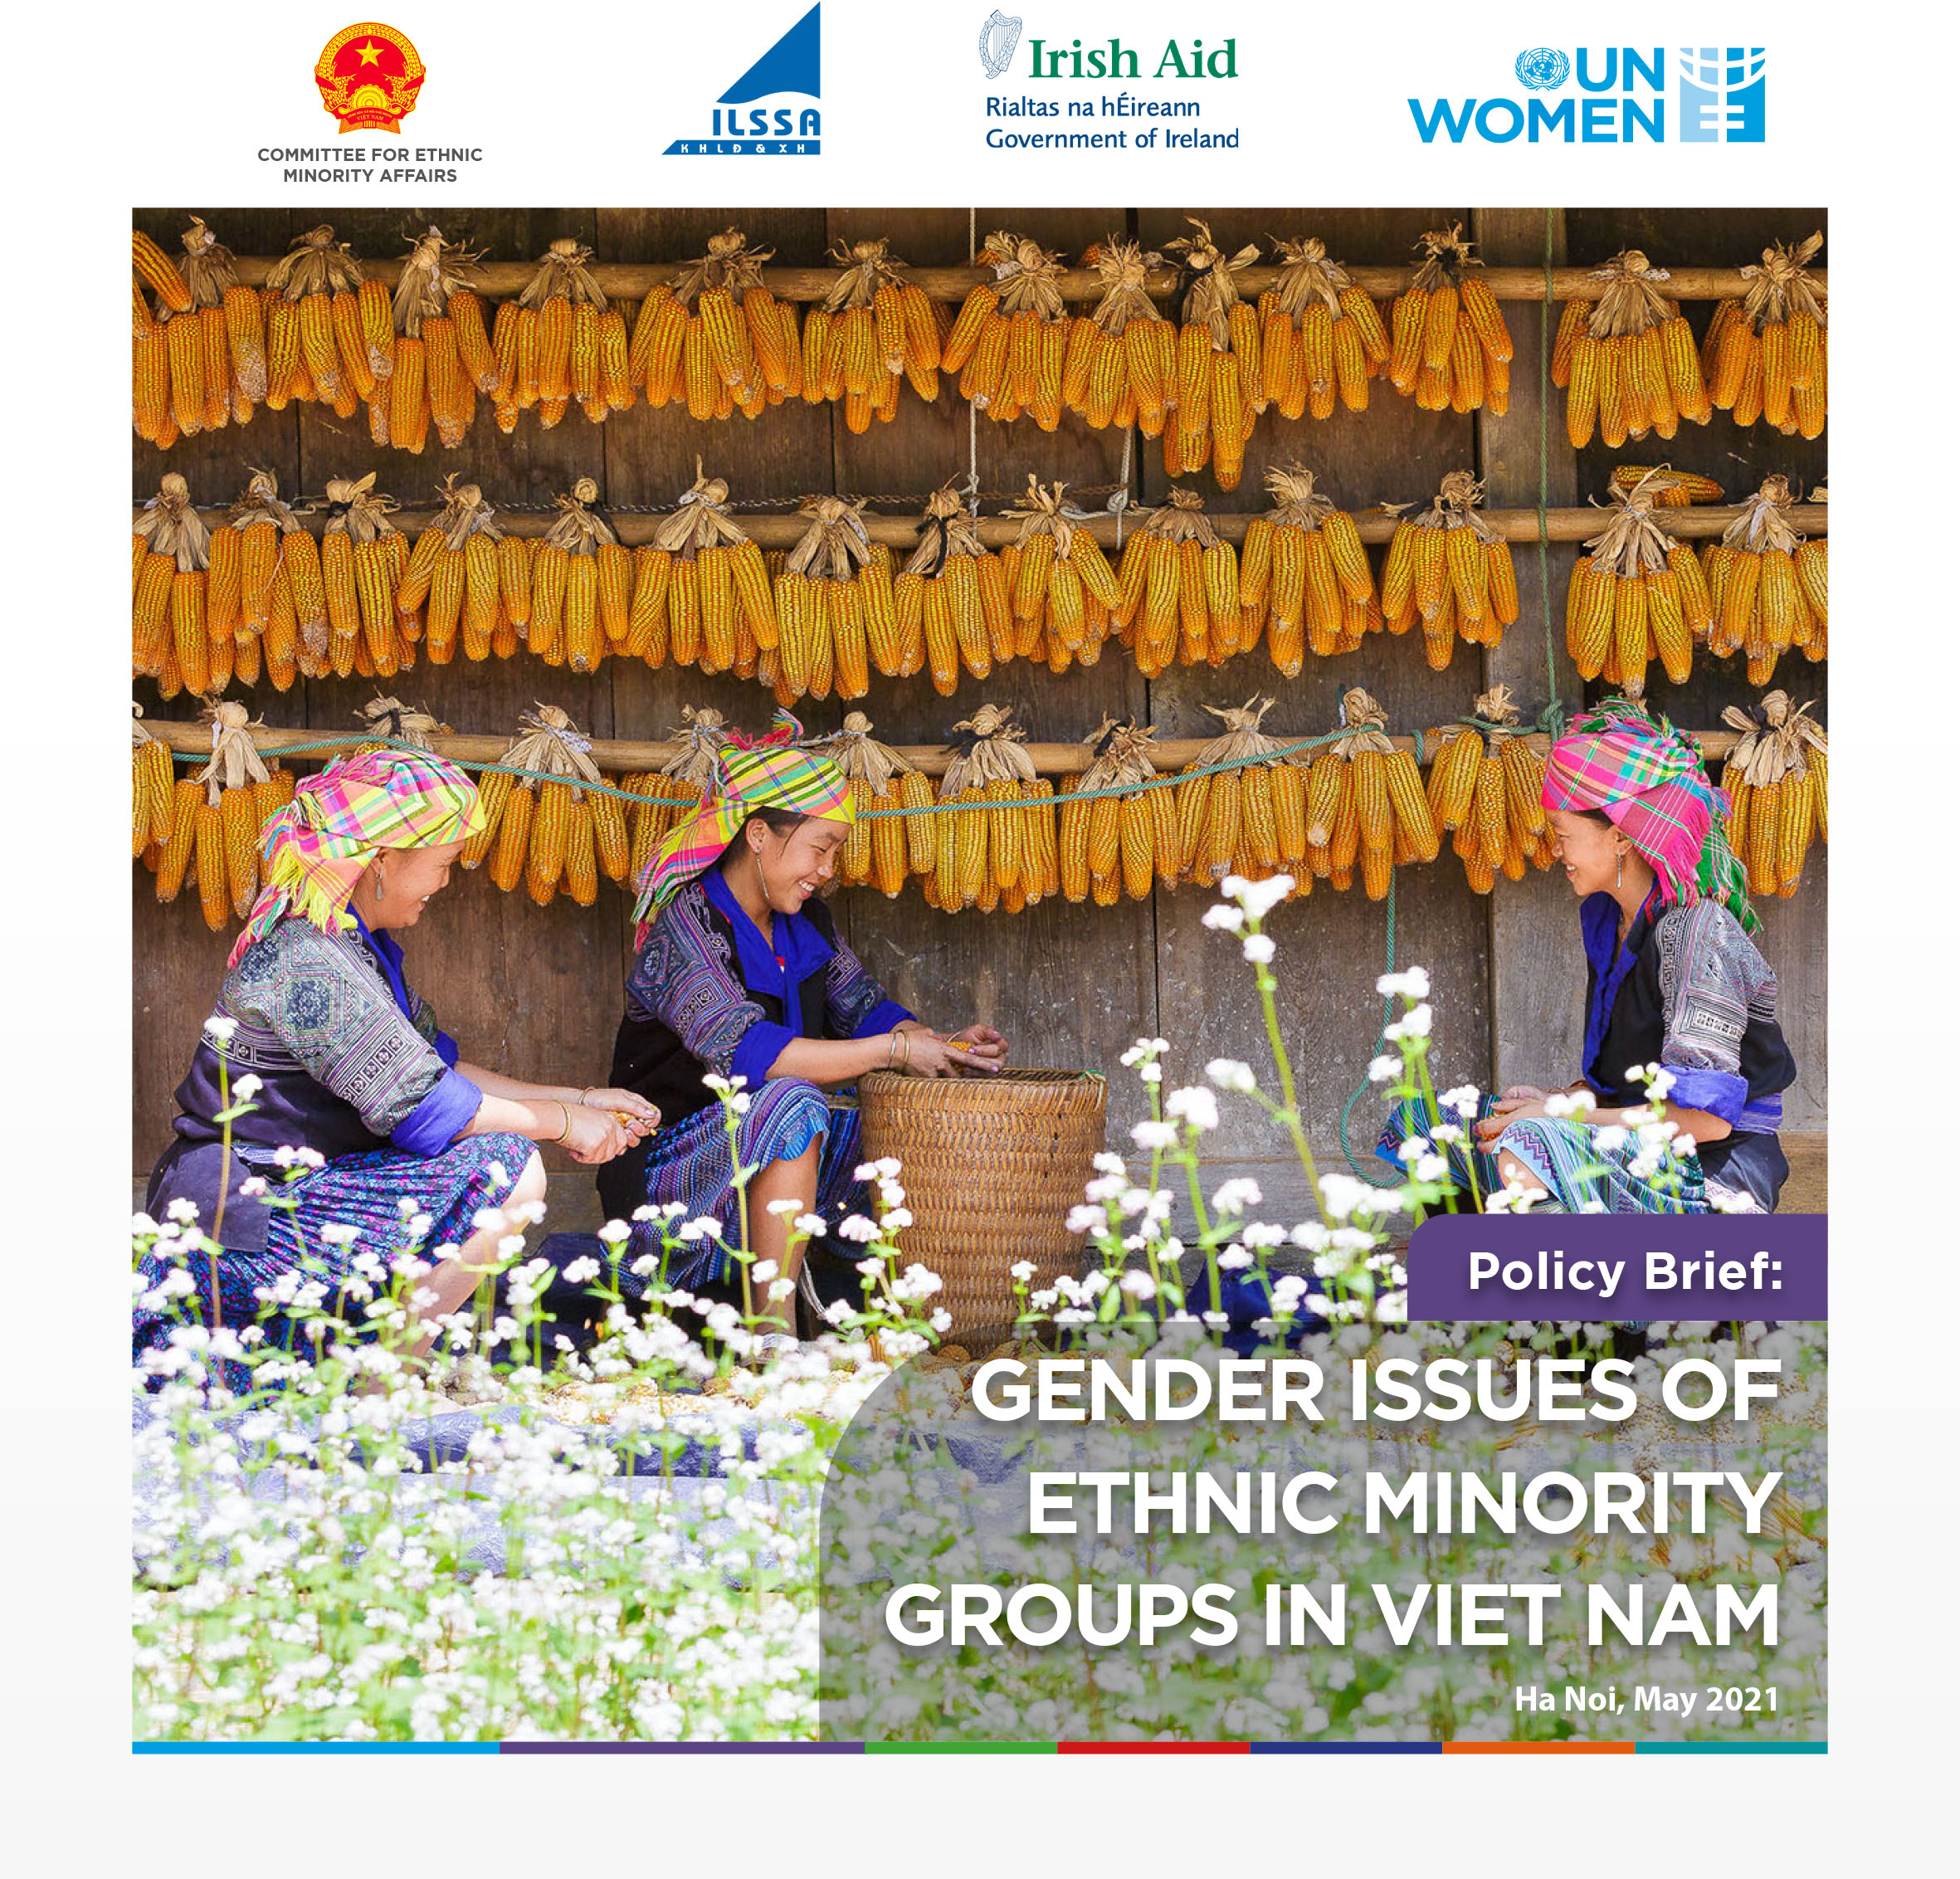 POLICY BRIEF: GENDER ISSUES OF ETHNIC MINORITY GROUPS IN VIET NAM